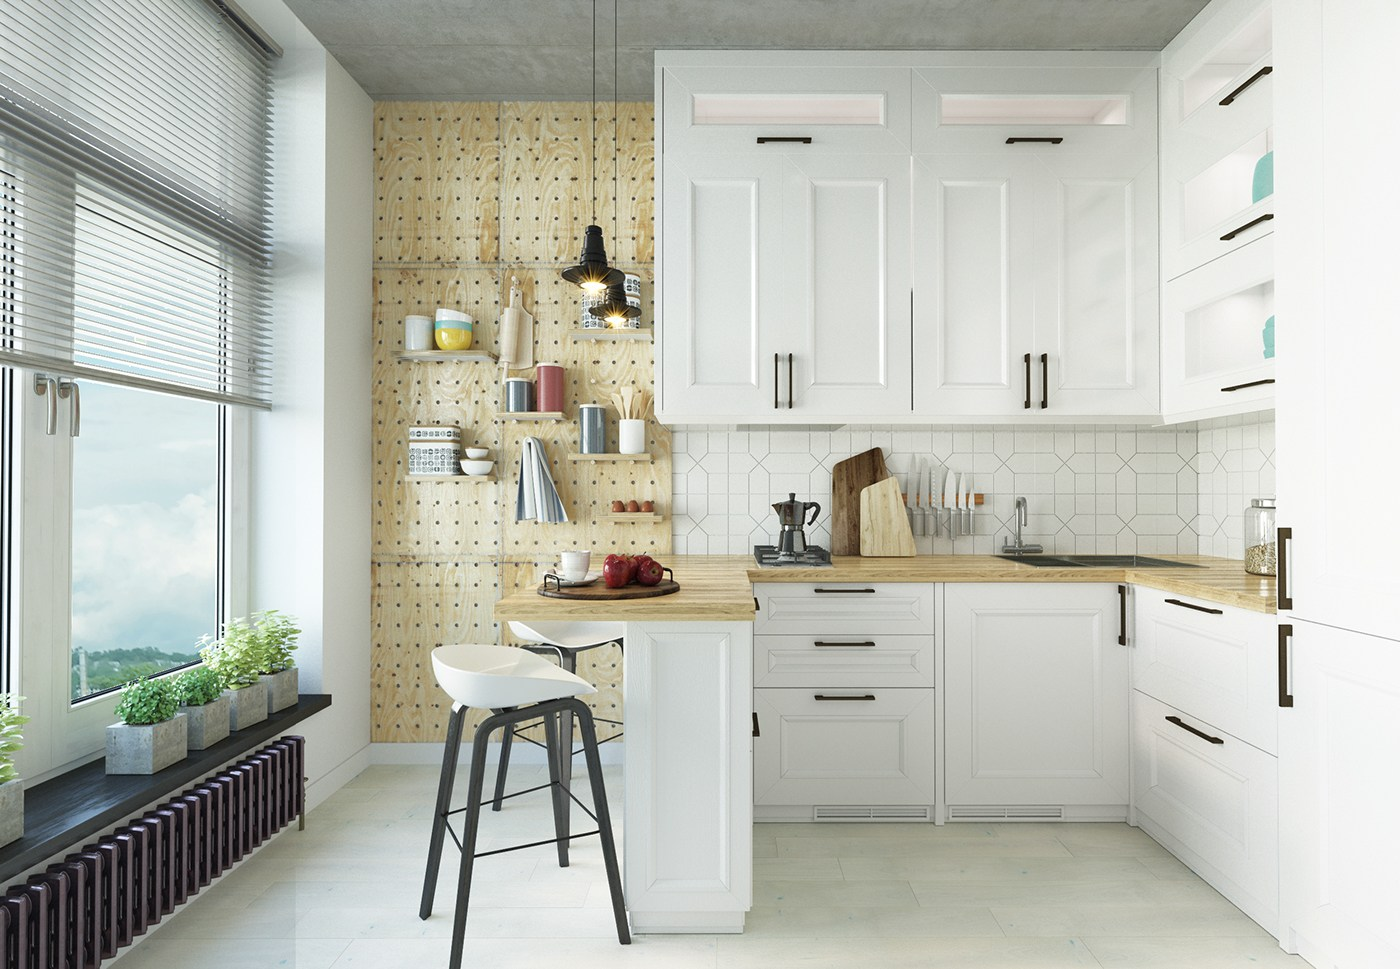 Small kitchen design with scandinavian style